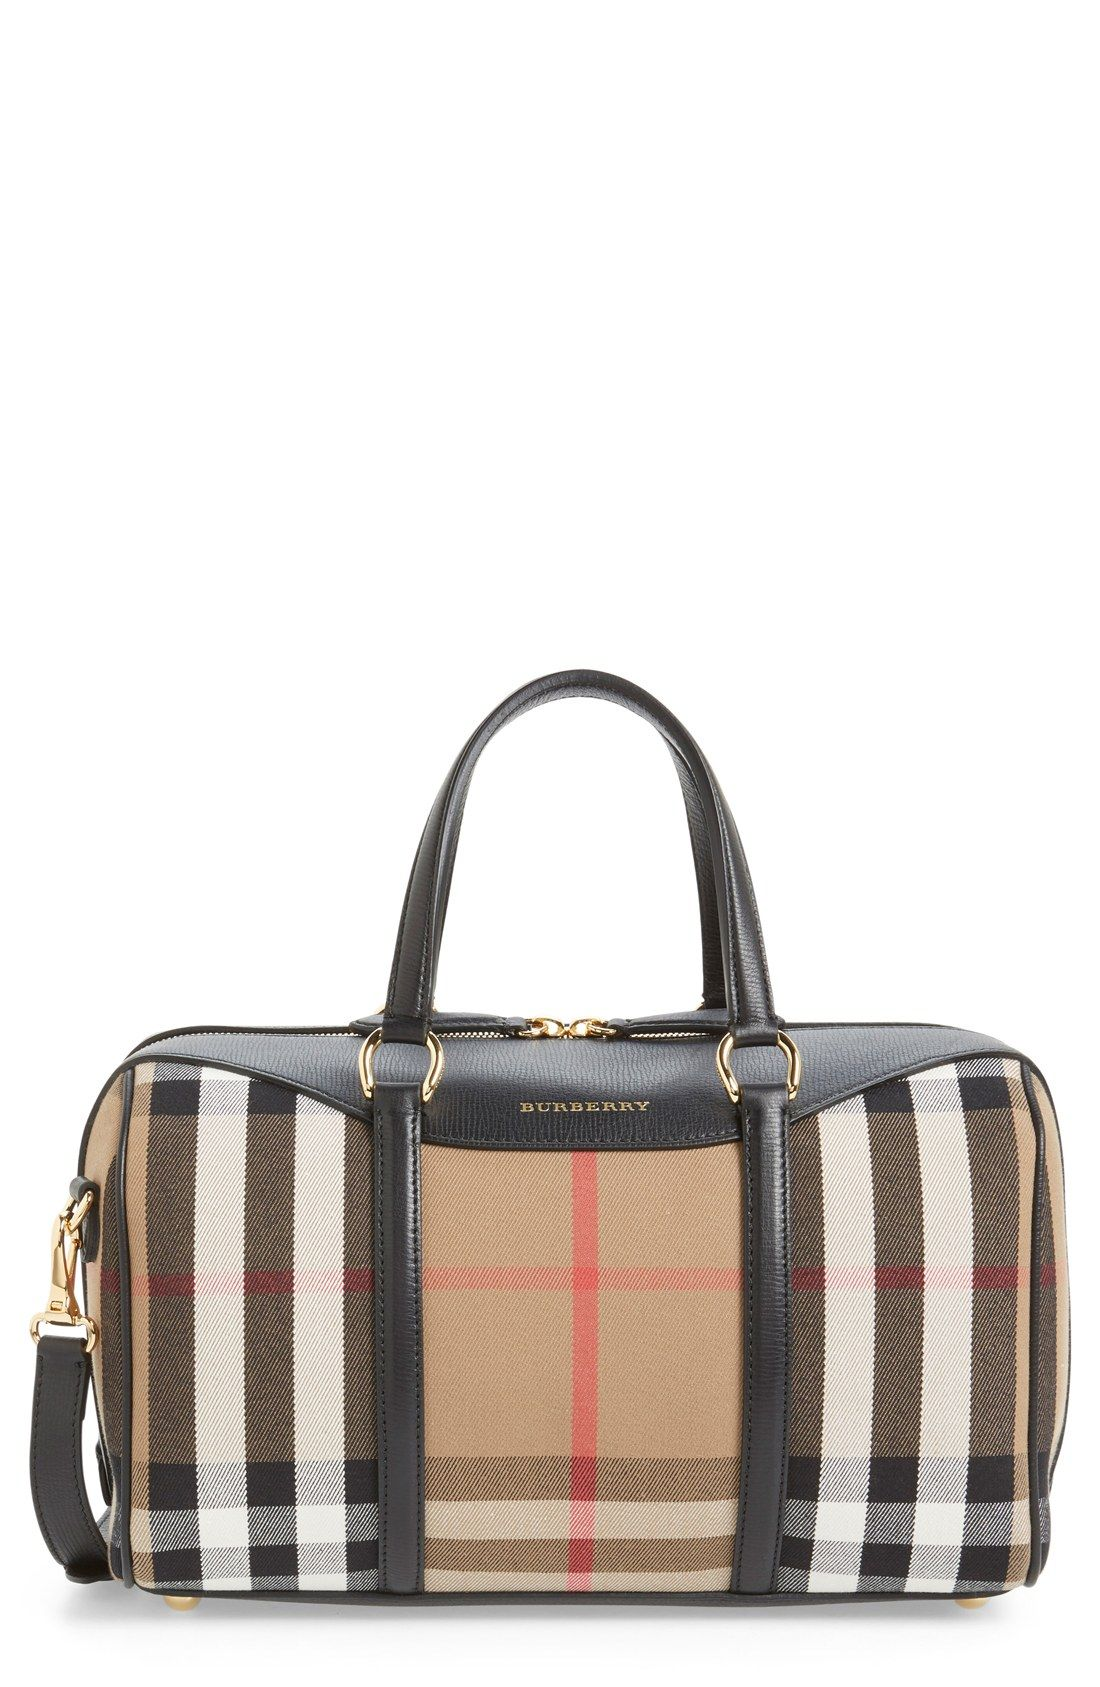 In love with this Burberry satchel in the classic check print and trimmed  with leather for a sleek and sophisticated look. 456ca2c6b7